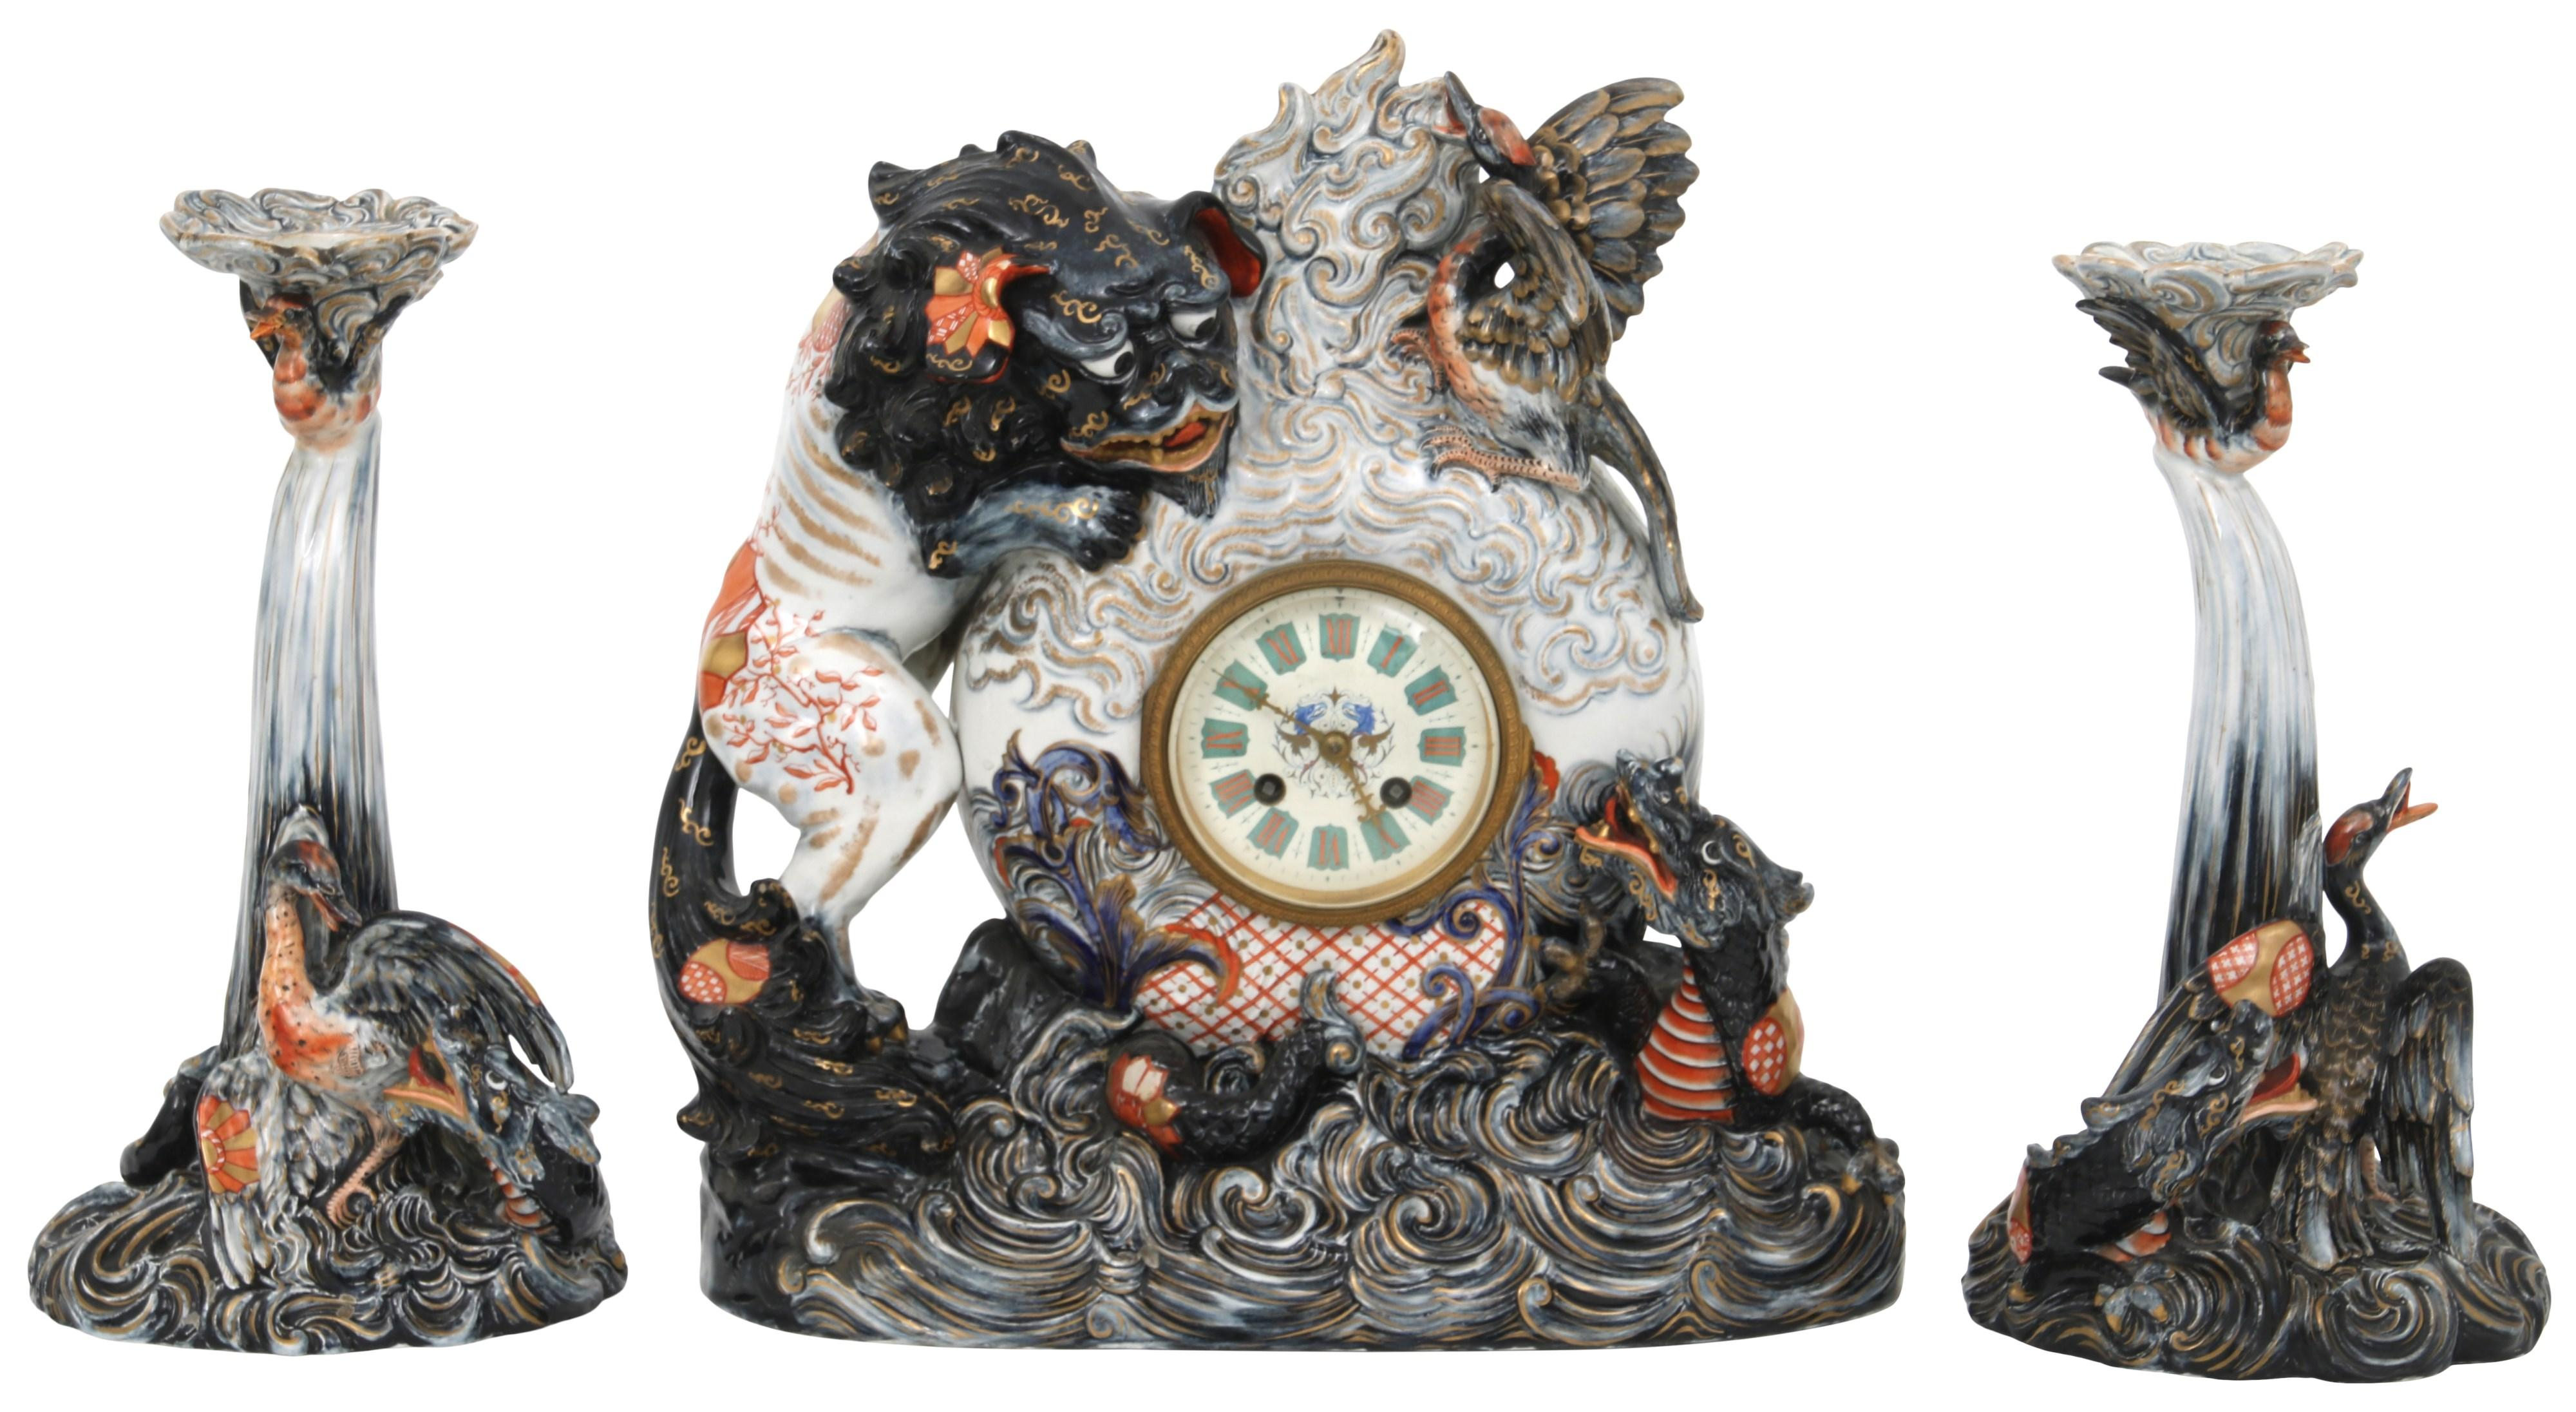 Émile Gallé Pottery Clock Garniture